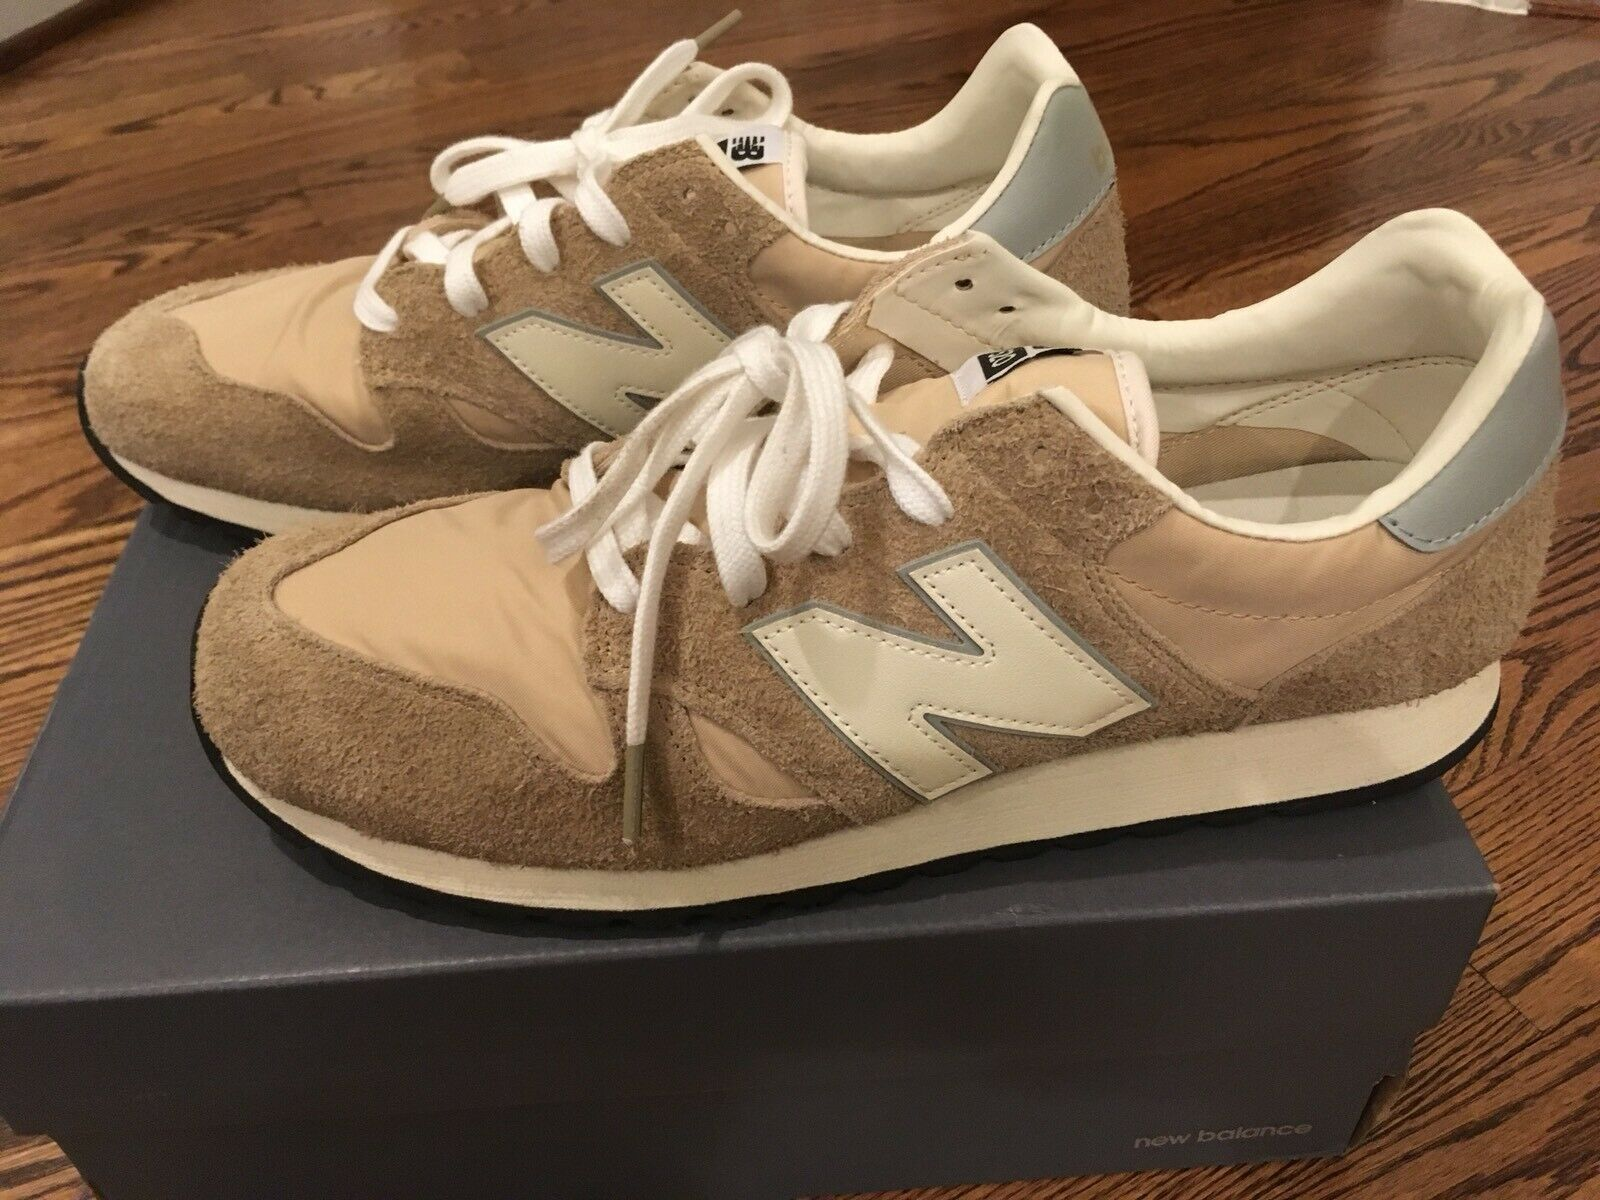 New Balance x J. Crew Classic 520 Sneakers shoes in Hairy Suede Sz 12 NIB